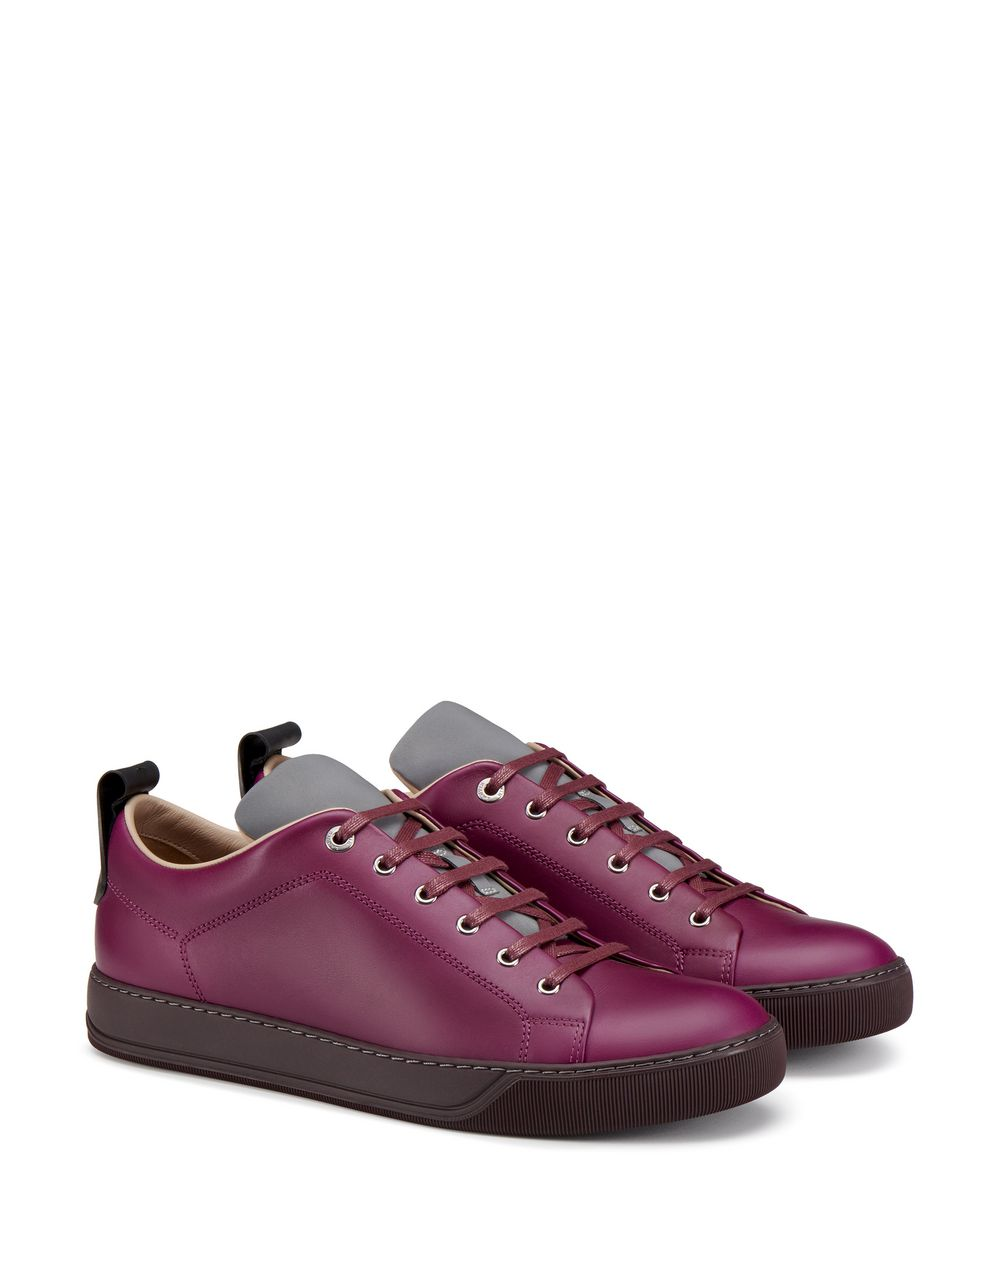 LOW-TOP SNEAKER WITH REFLECTIVE TONGUE - Lanvin